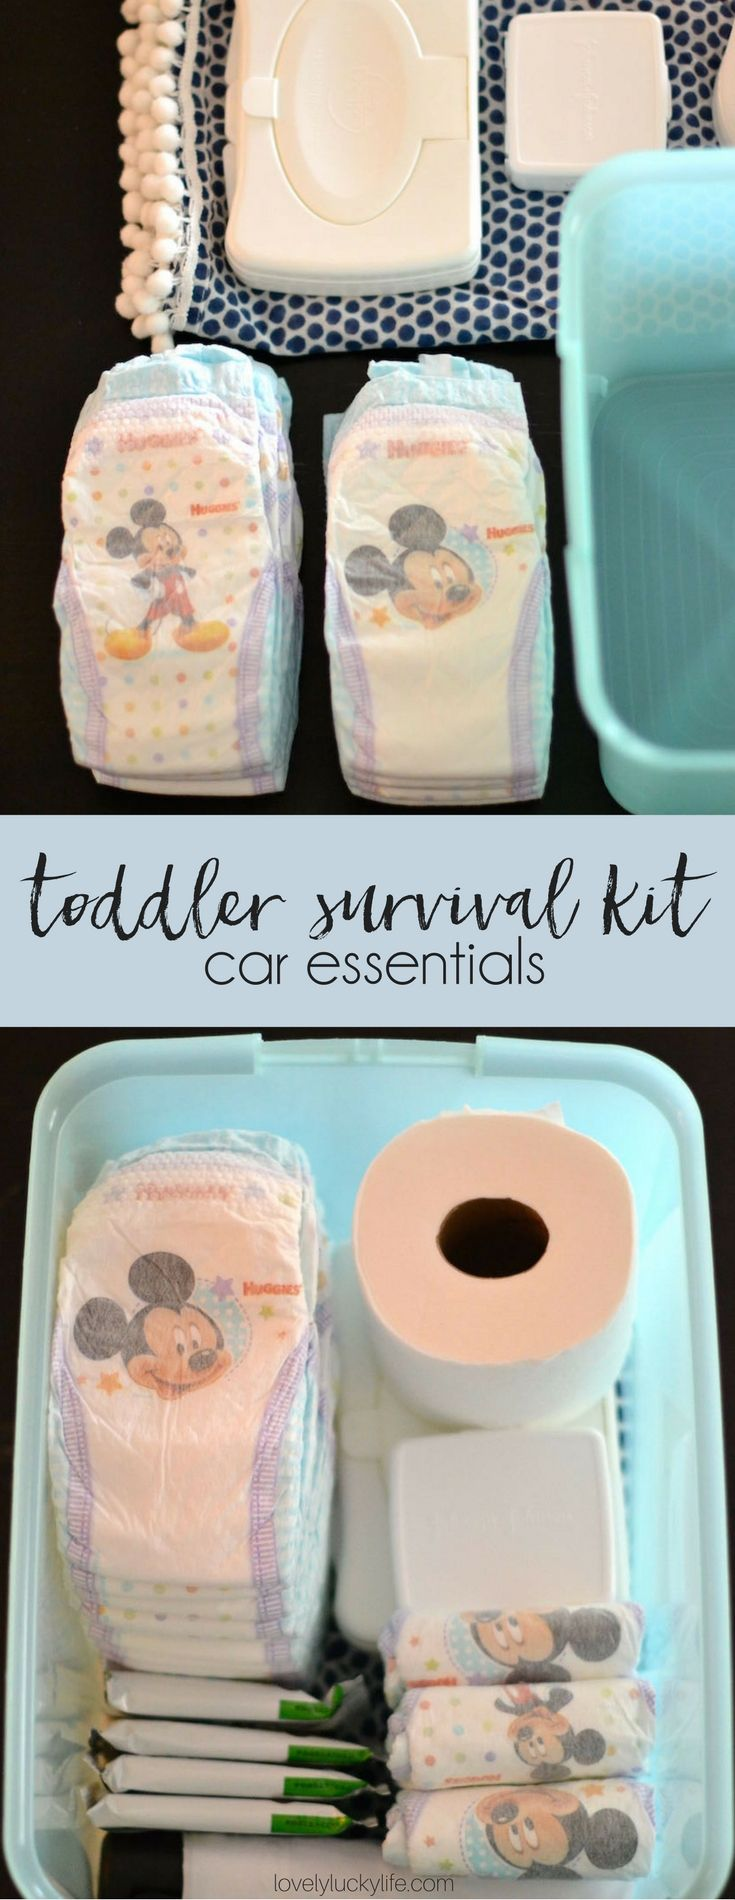 Essentials Every Mom of Toddlers NEEDS in Her Car // DIY toddler survival kit for the car - perfect for road trips or when you don't want to carry a diaper bag  #momlife #toddlers #roadtripessentials